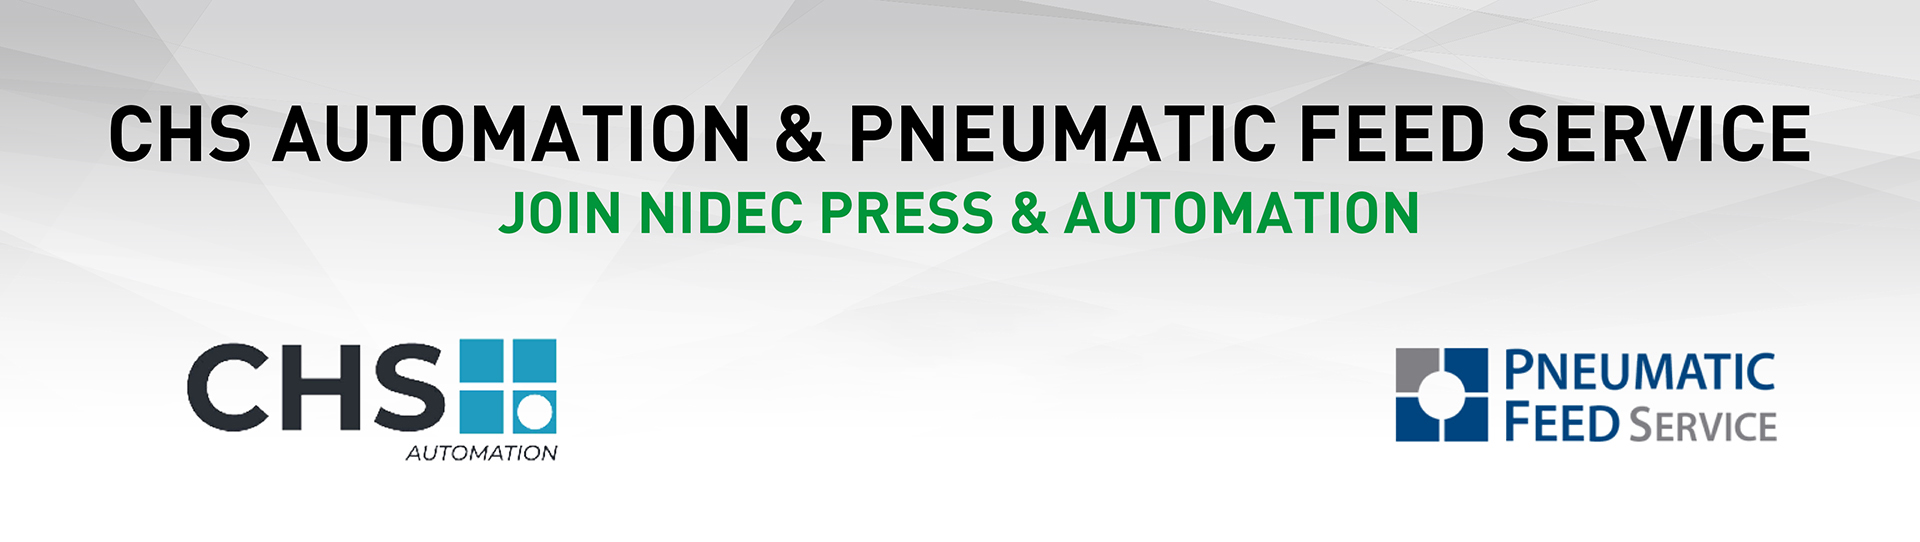 CHS Automation/Pneumatic Feed Service Joins Nidec Press & Automation Group